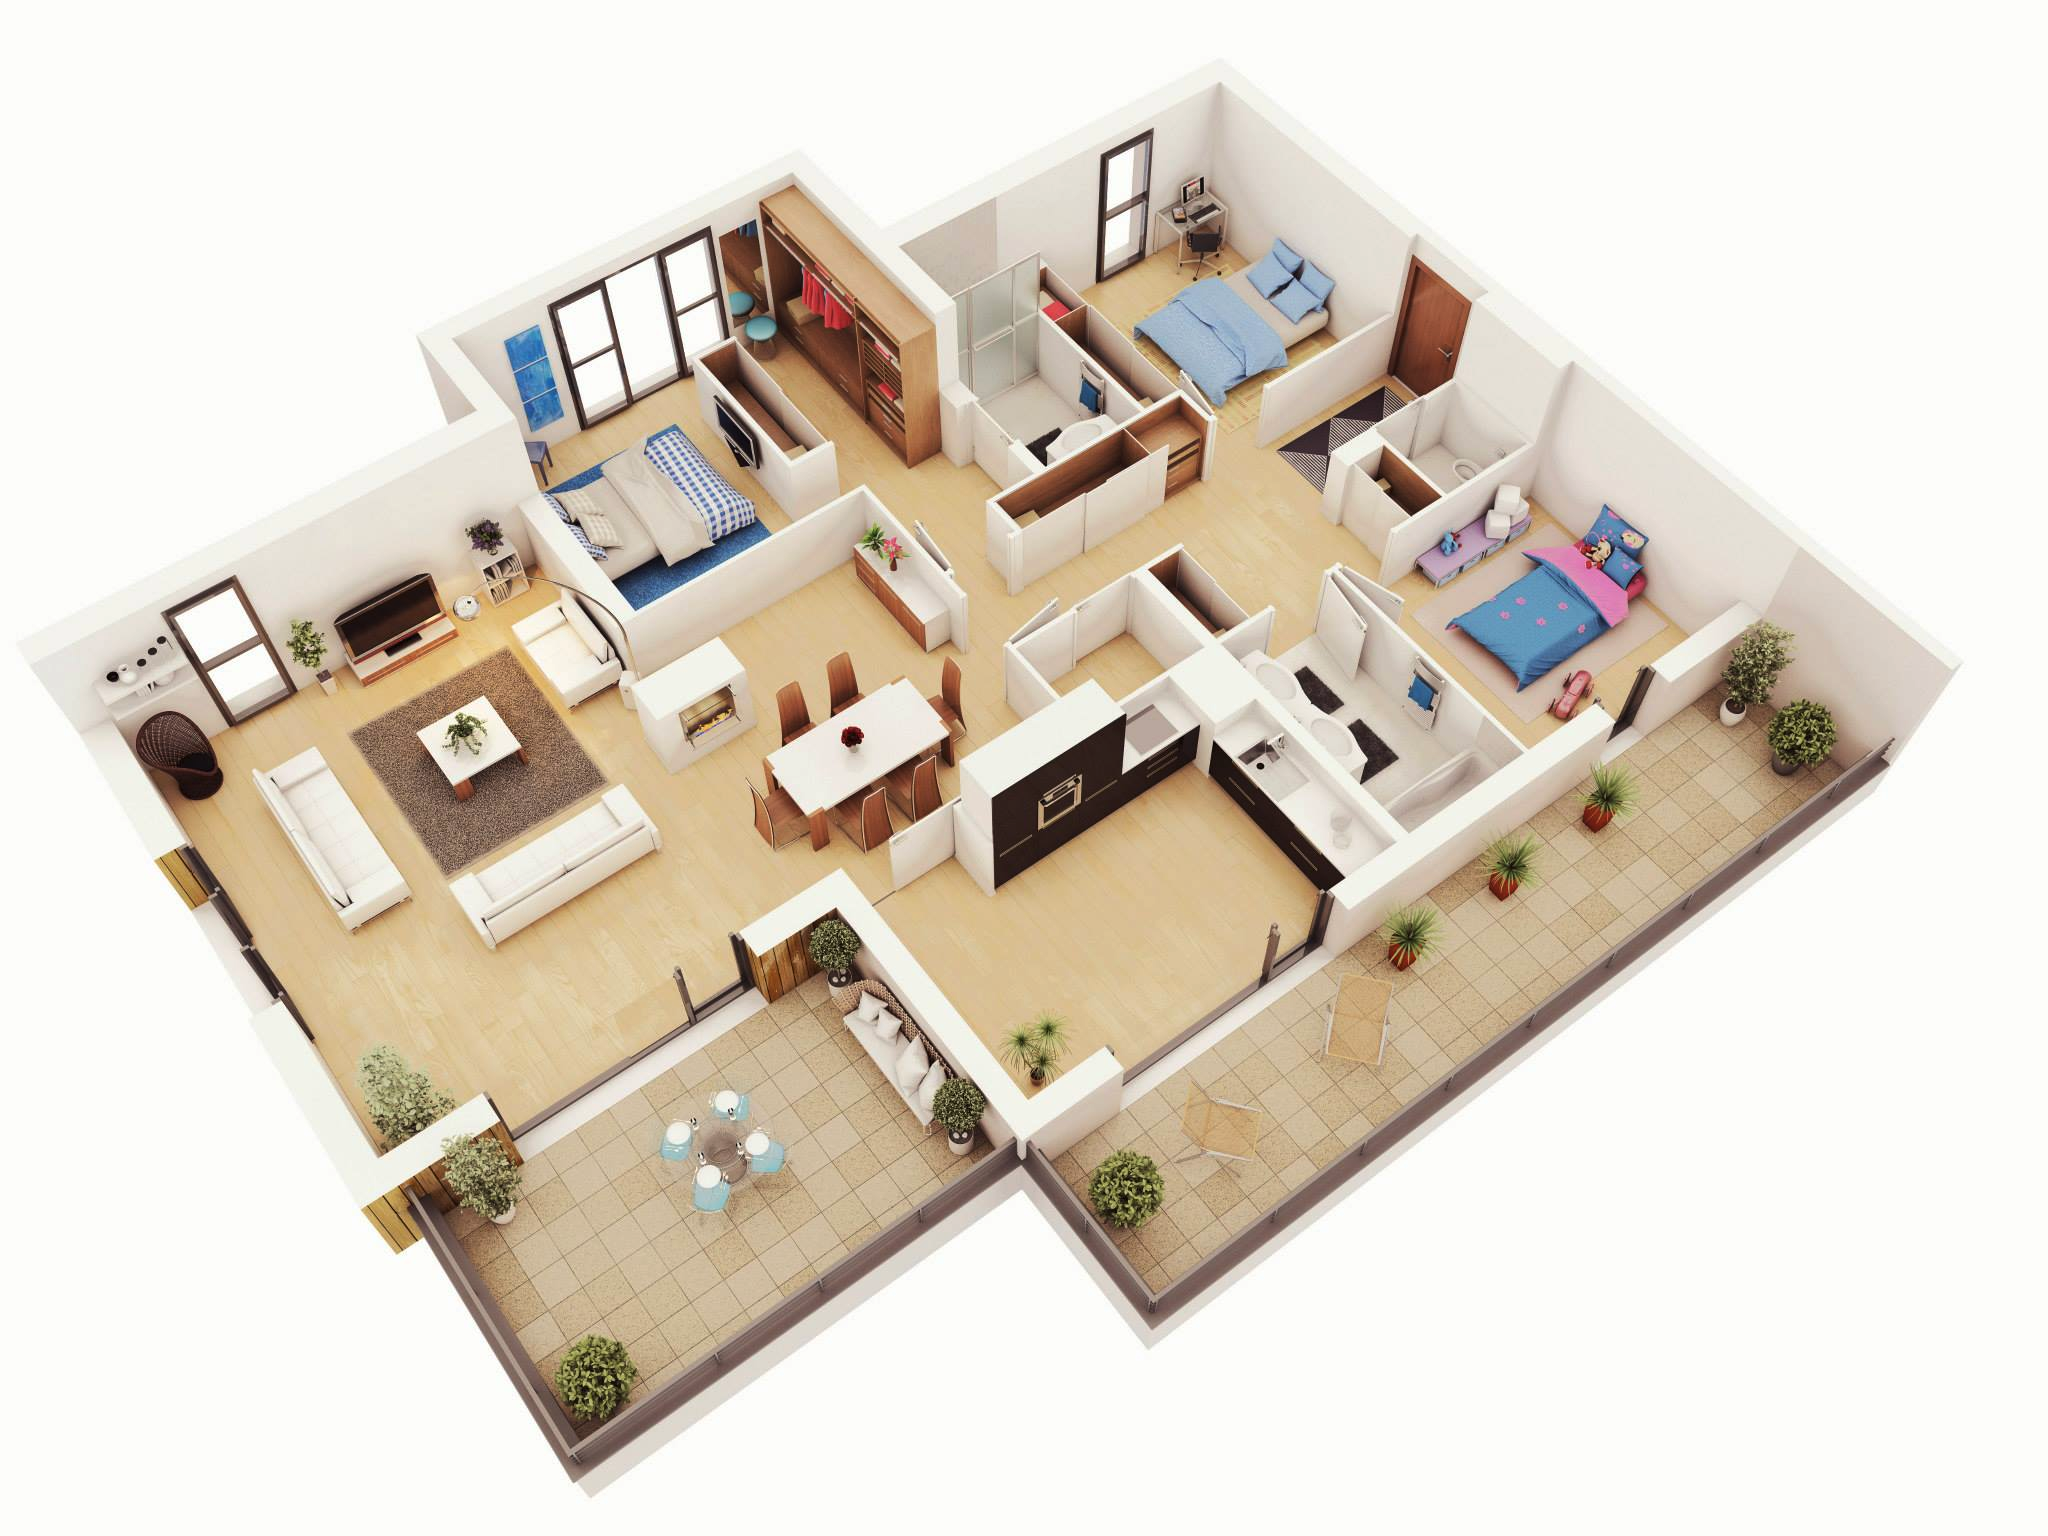 25 more 3 bedroom 3d floor plans - Three bedroom house floor plans ...